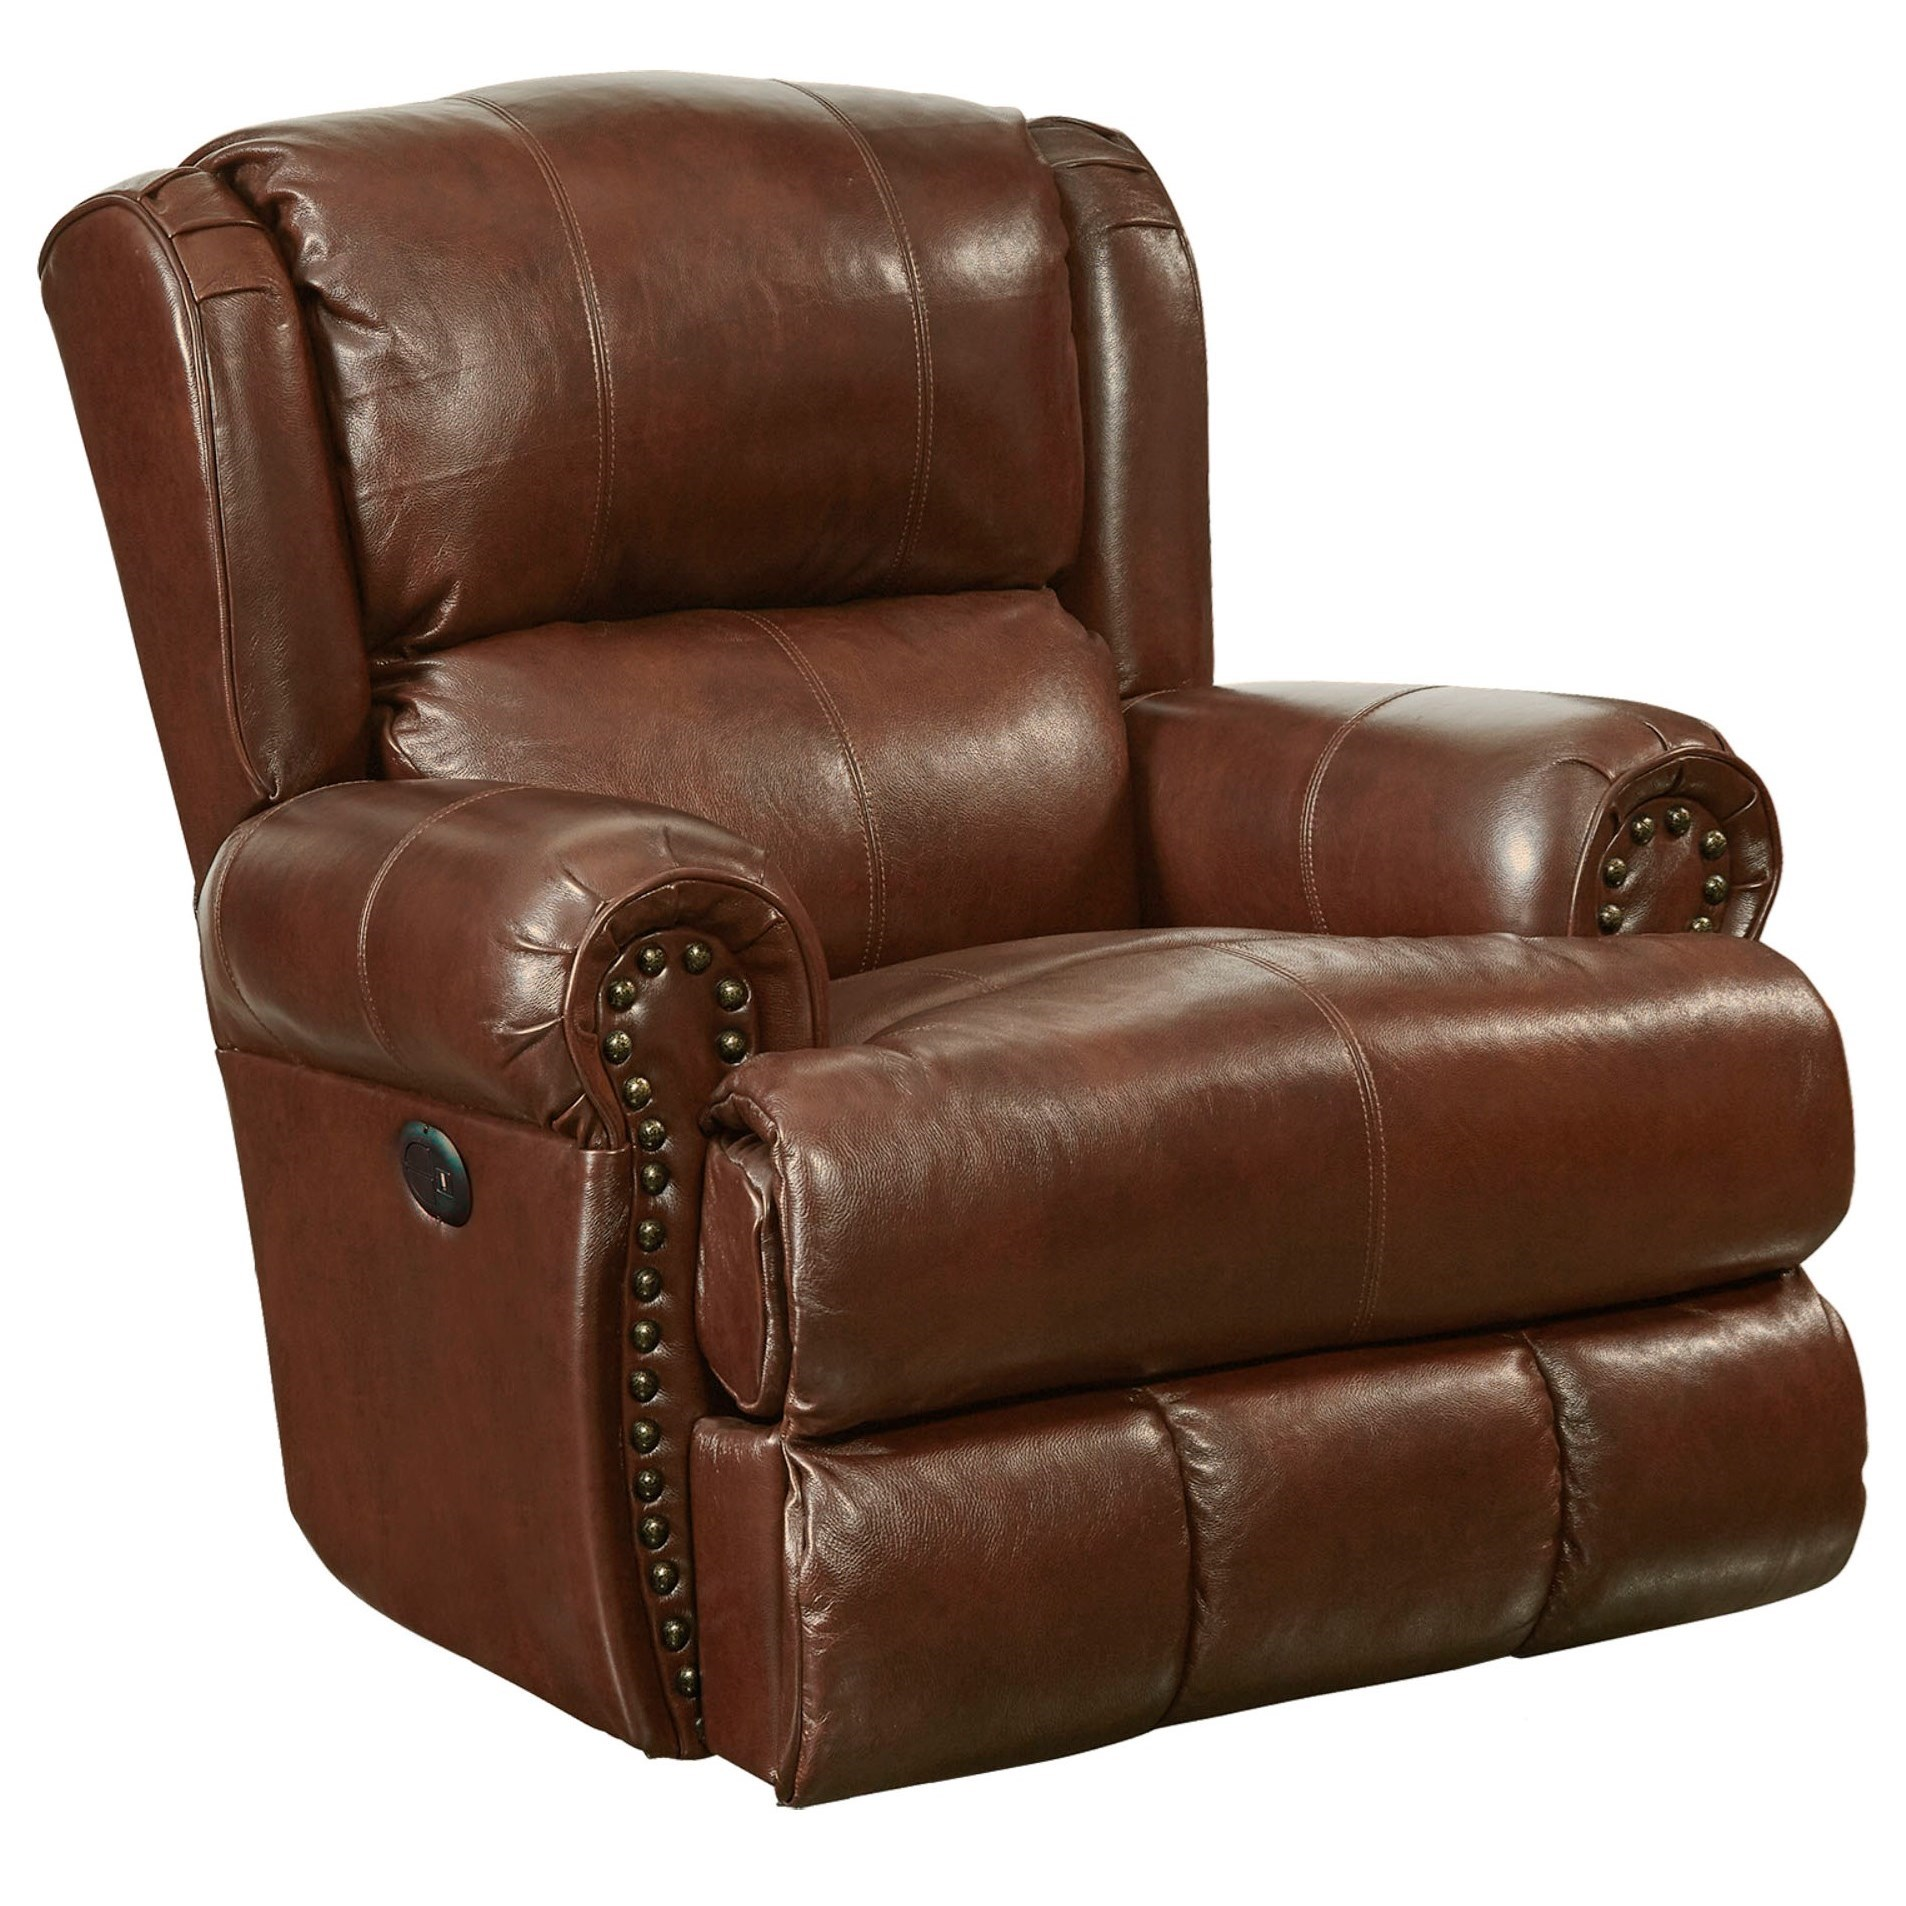 lay flat recliner chairs esp fishing chair catnapper motion and recliners duncan power deluxe